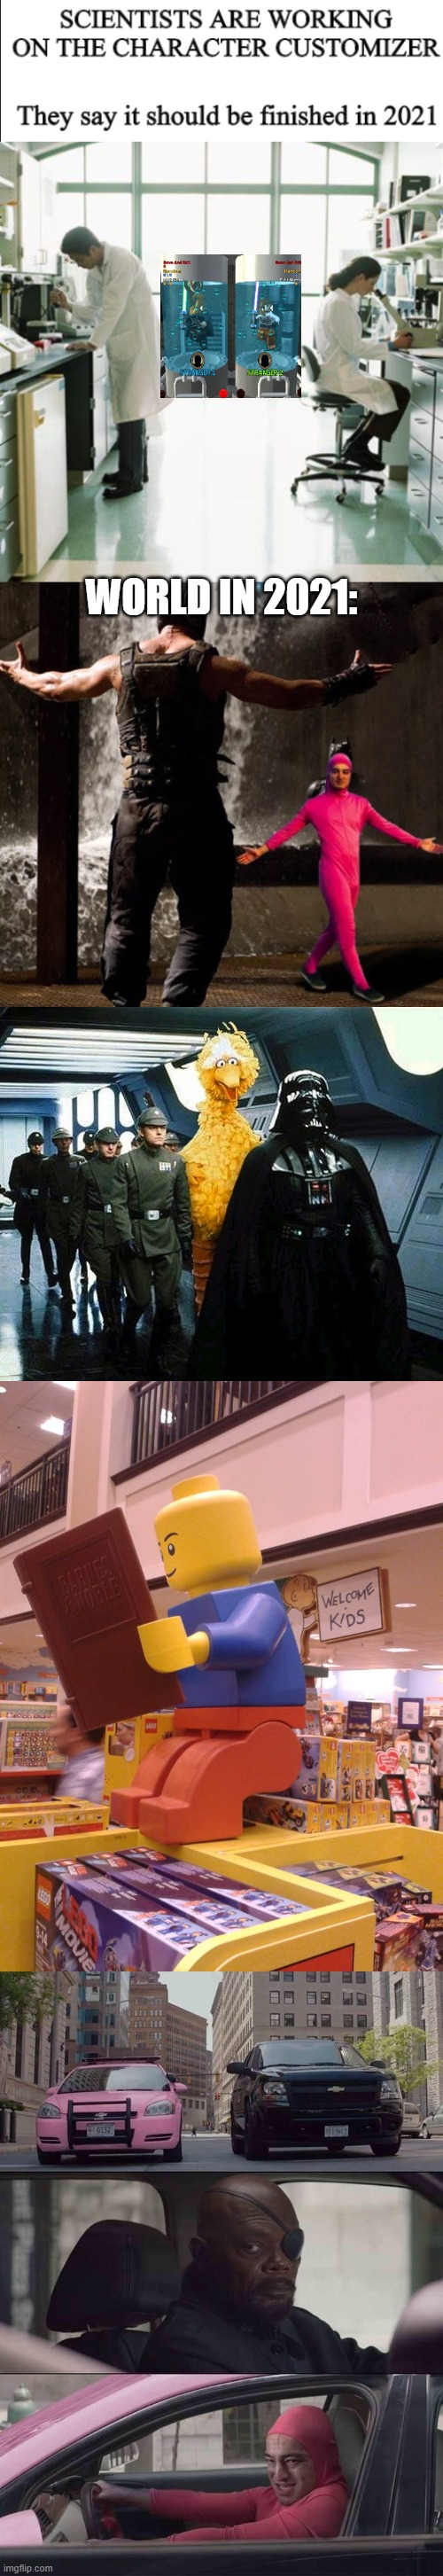 the sacred character customizer |  WORLD IN 2021: | image tagged in vader big bird,lego man pooping,pink guy nick fury,joji boss fight,memes,star wars memes | made w/ Imgflip meme maker